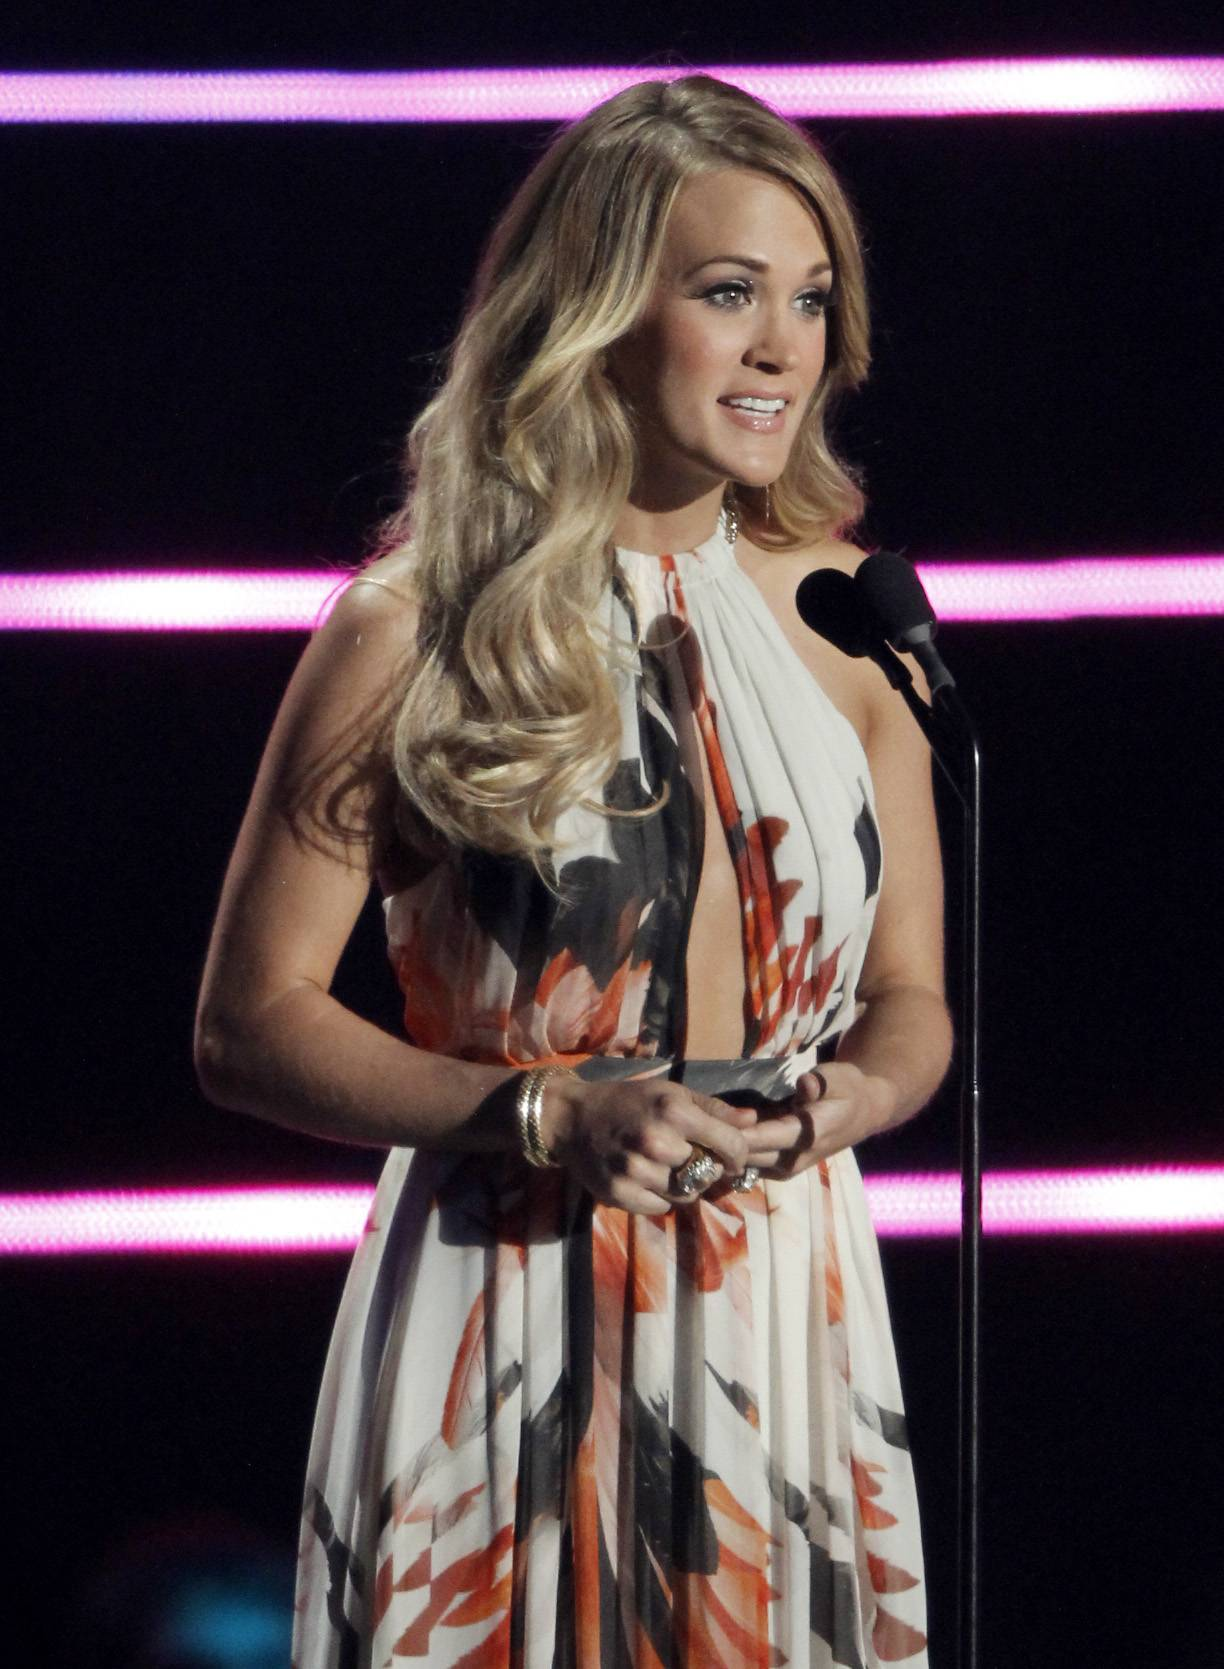 Carrie Underwood speaks on stage Wednesday at the CMT Music Awards at Bridgestone Arena in Nashville, Tenn.